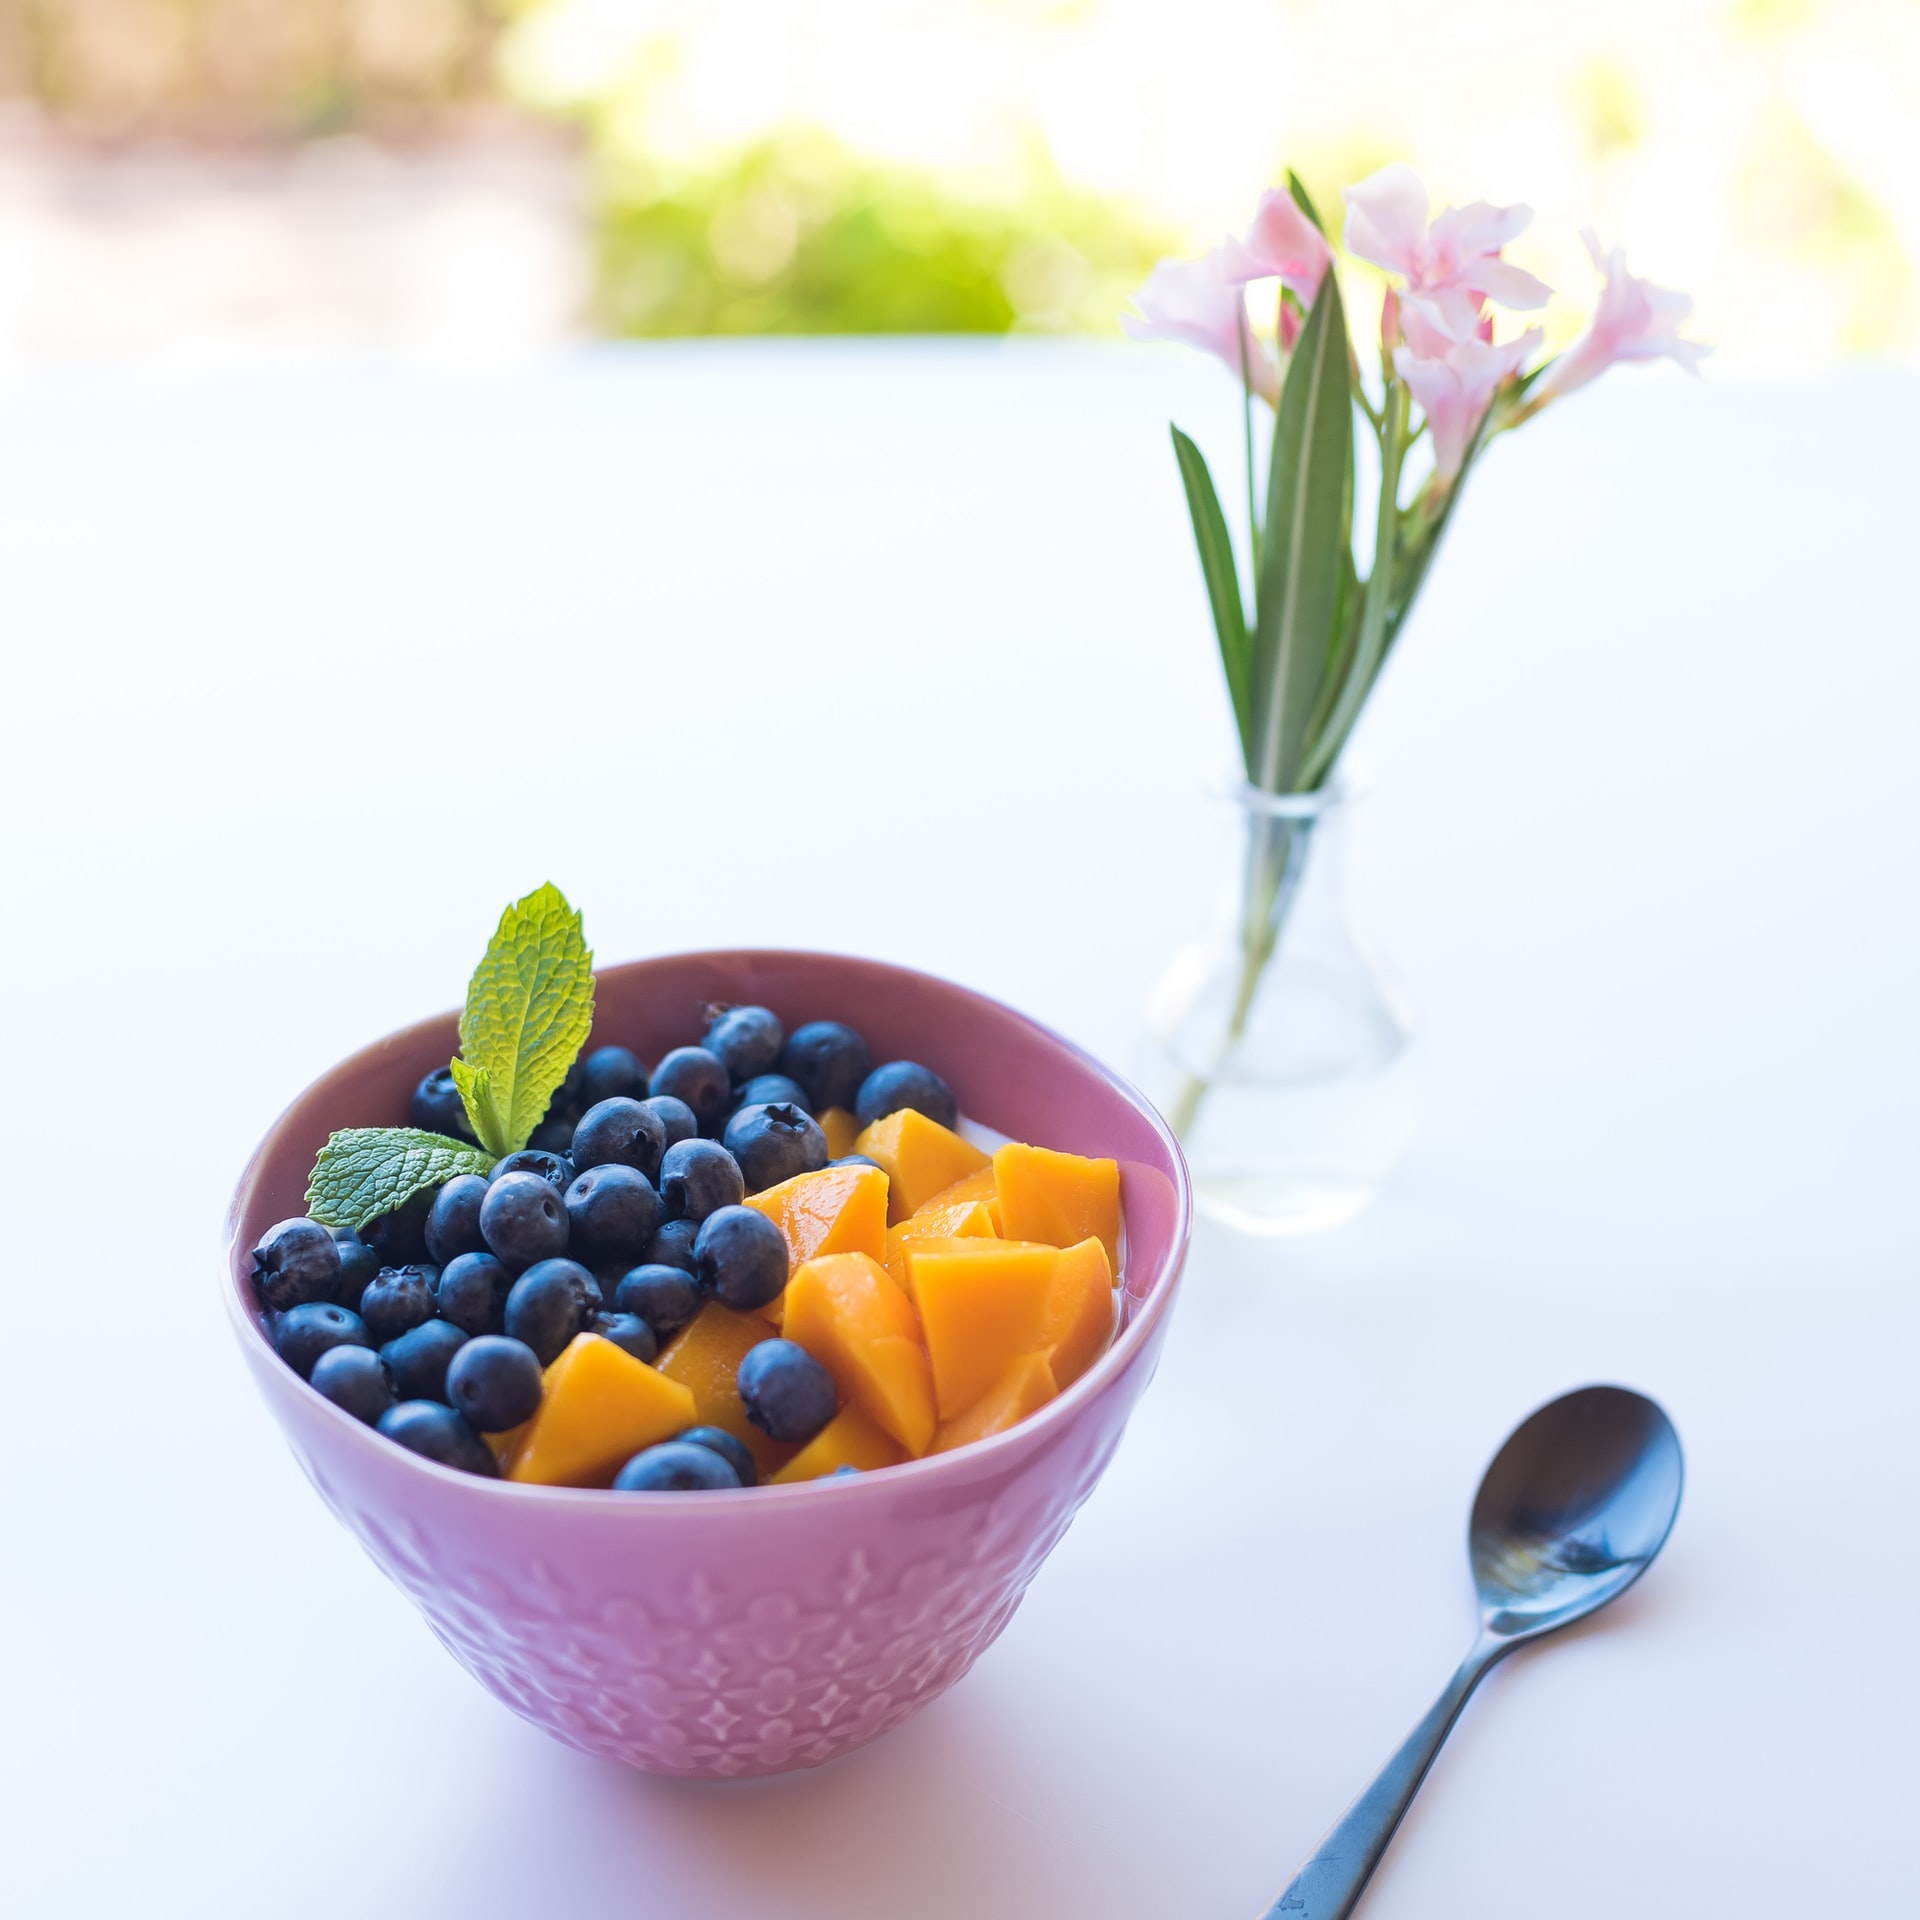 fruit bowl and flowers on a table.